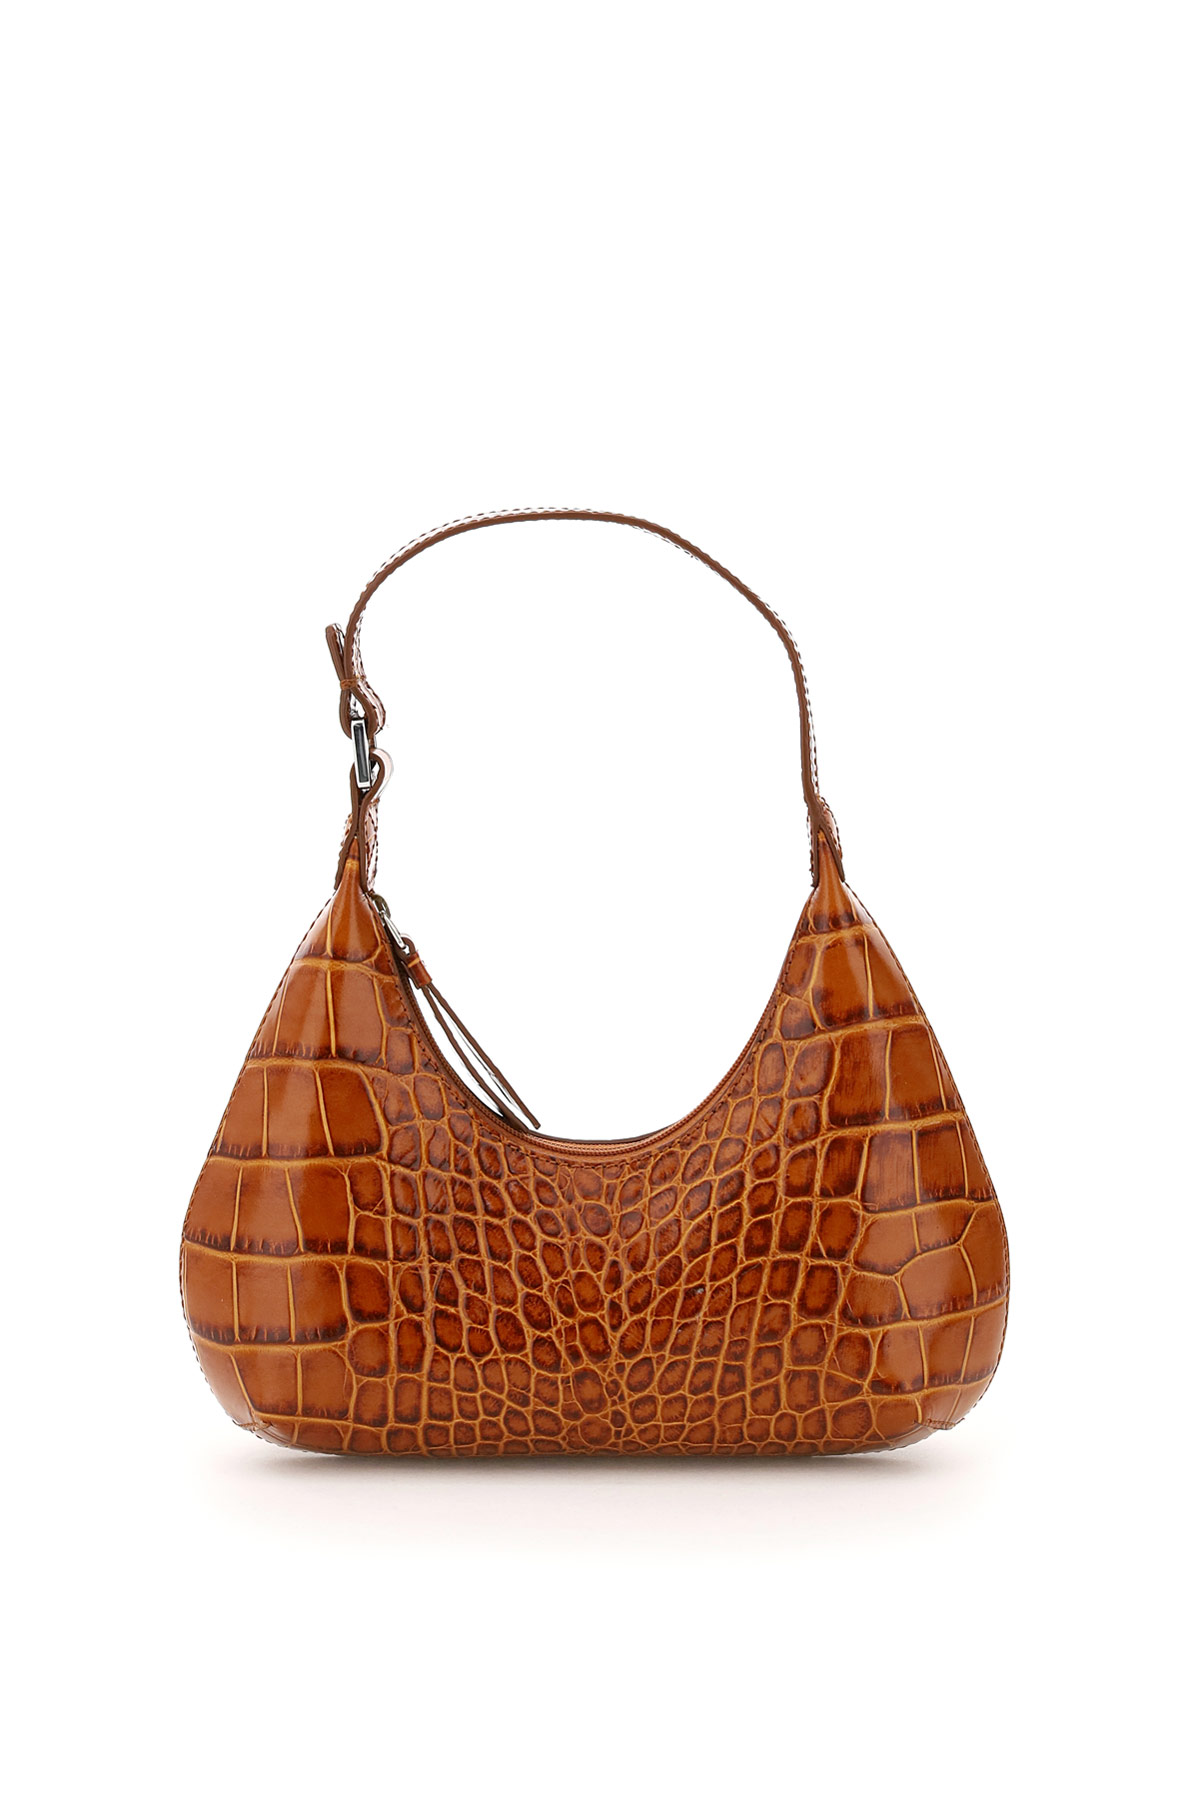 BY FAR AMBER CROCO LEATHER PRINT BAG